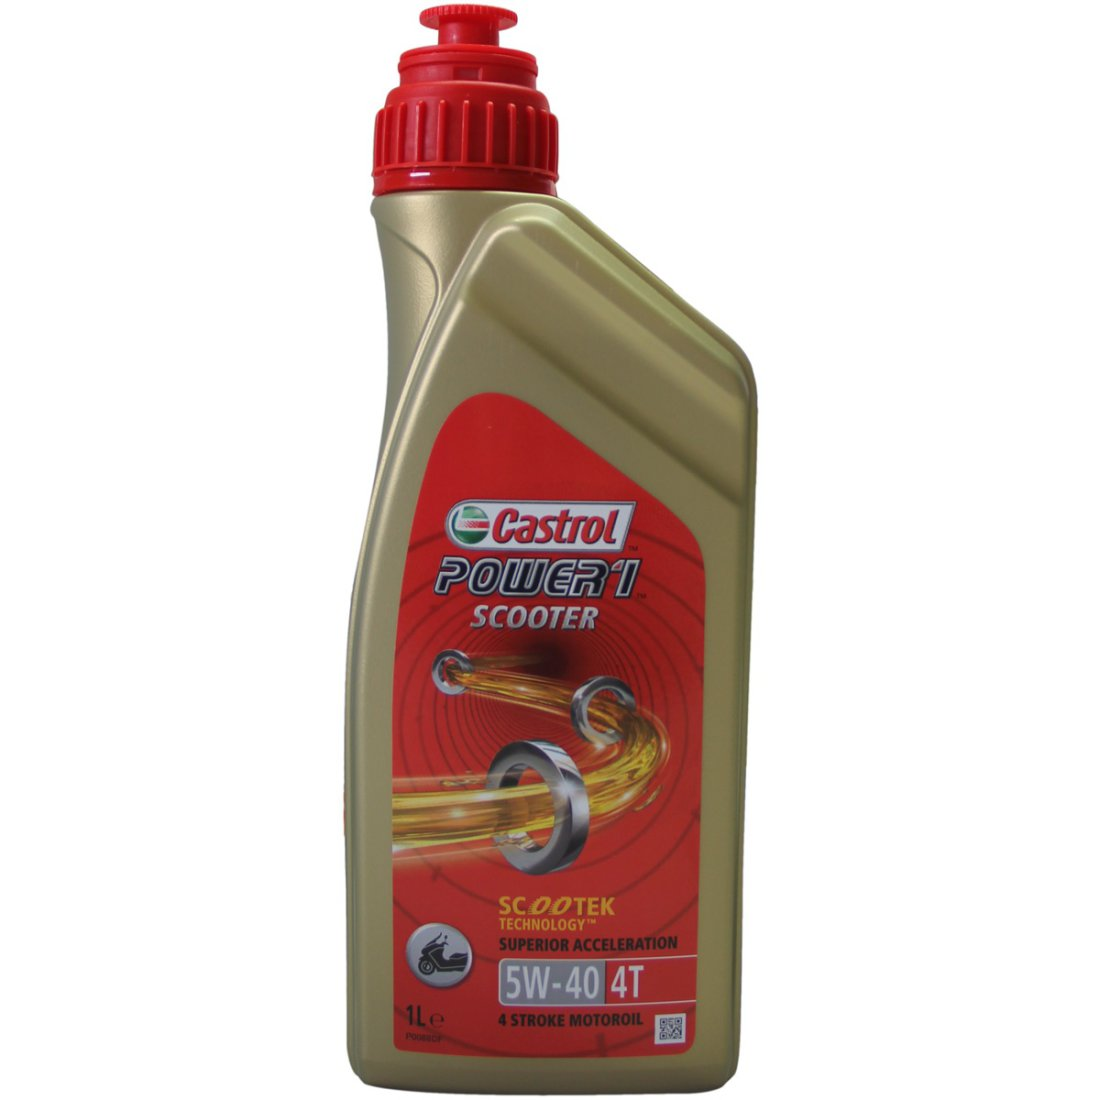 castrol power 1 scooter 4t 1l 5w 40 oil and spray motocard. Black Bedroom Furniture Sets. Home Design Ideas